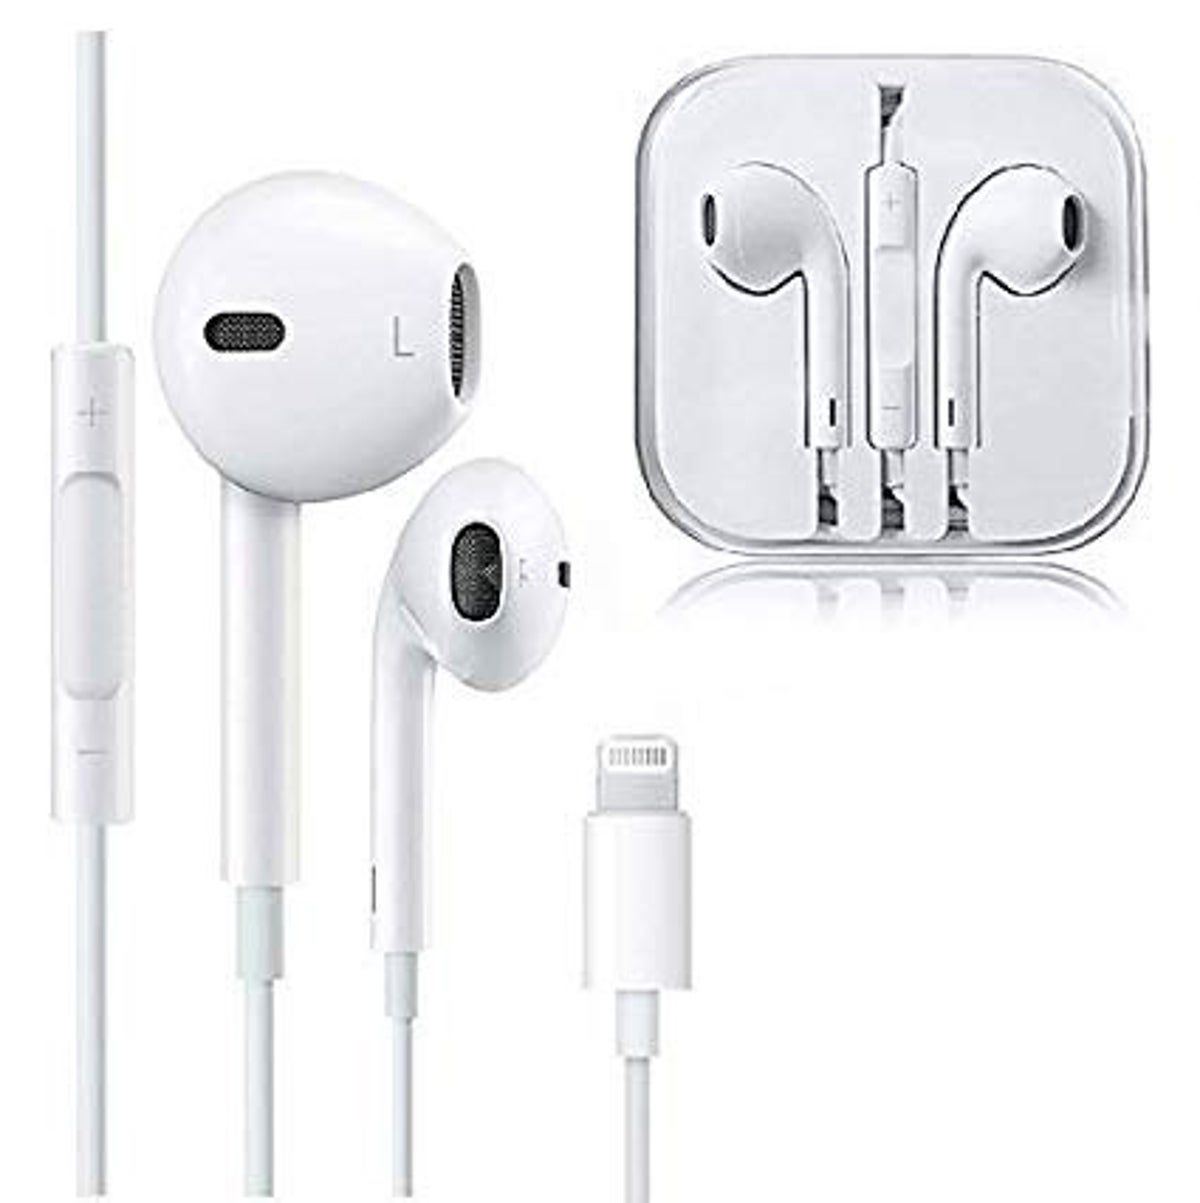 For Iphone 6 7 8 Plus Iphone X Xs Max Xr 11 Wired Headphone Headset Earbuds Gift Earbud Headphones Apple Iphone 6 Iphone Wireless